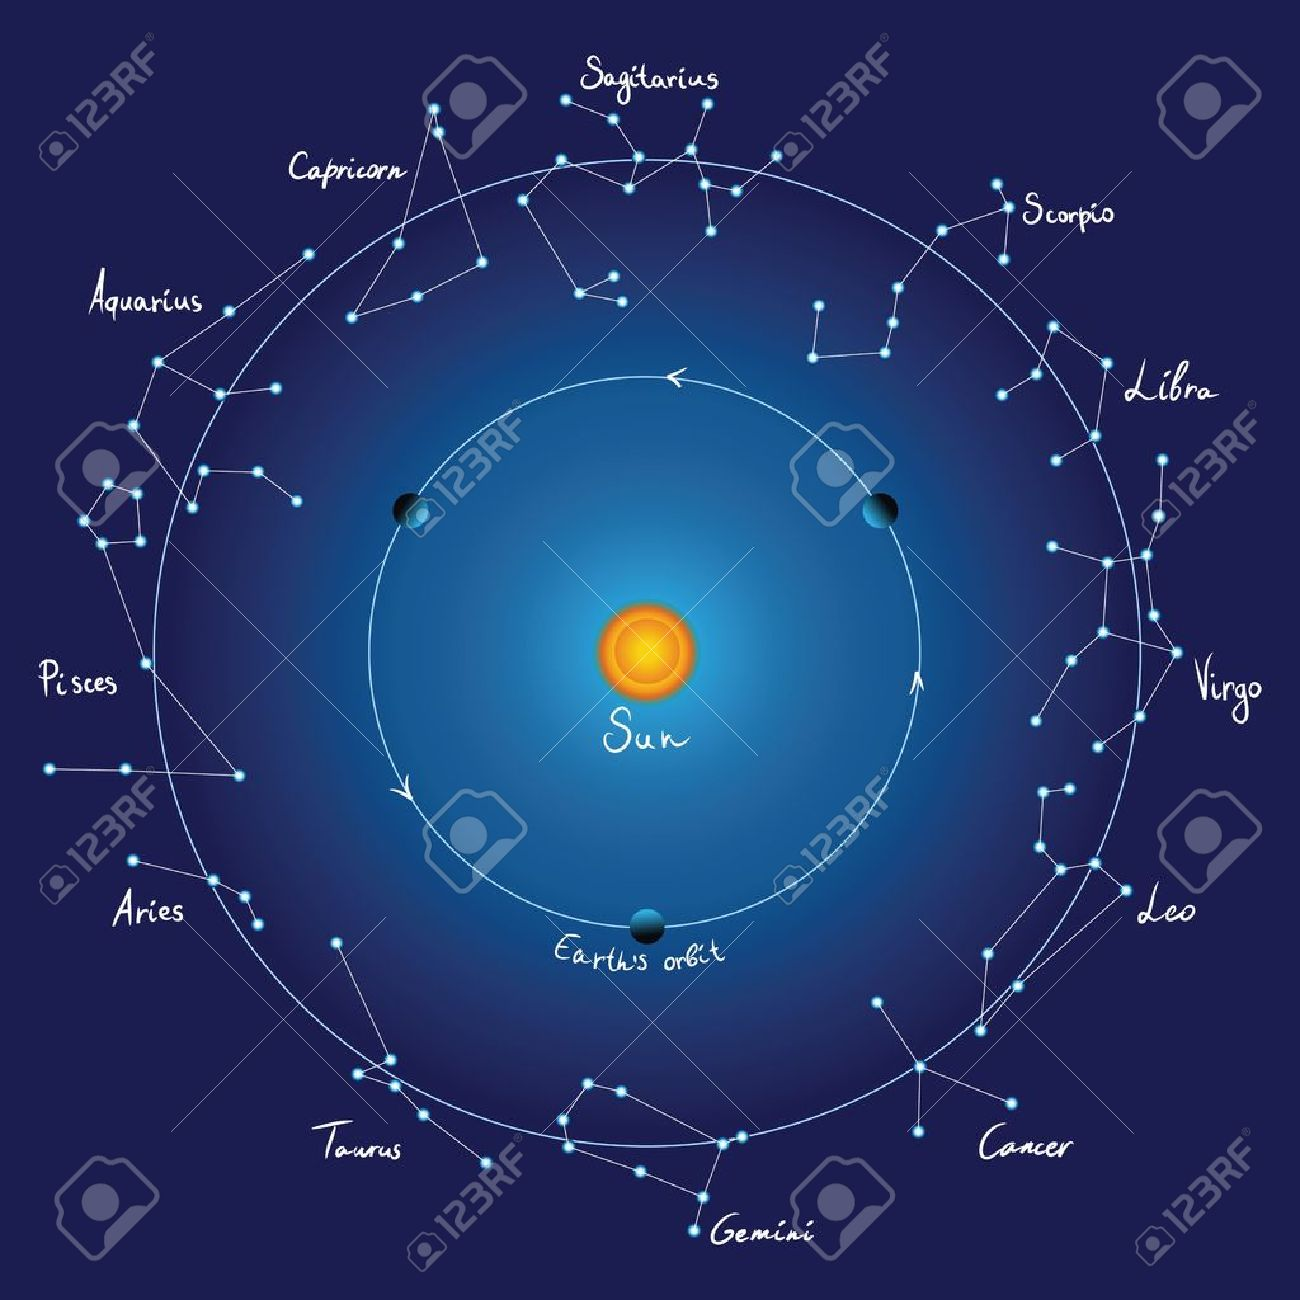 astrology chart images stock pictures royalty free astrology